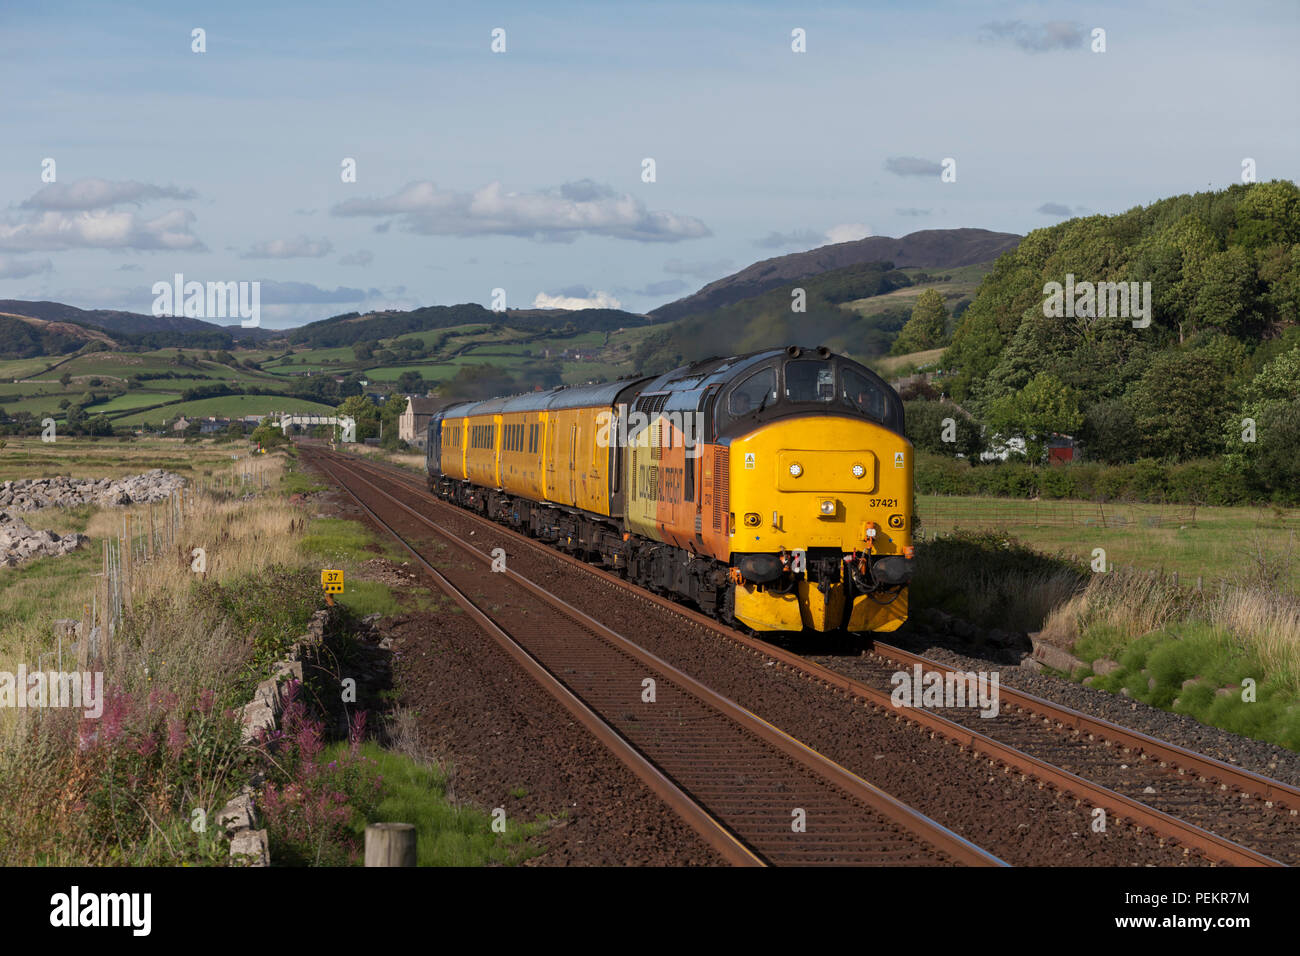 A Colas Railfright class 37 locomotive at Kirkby In Furness on the Cumbrian coast line hauling the Network Rail Plain Line pattern recognition train Stock Photo